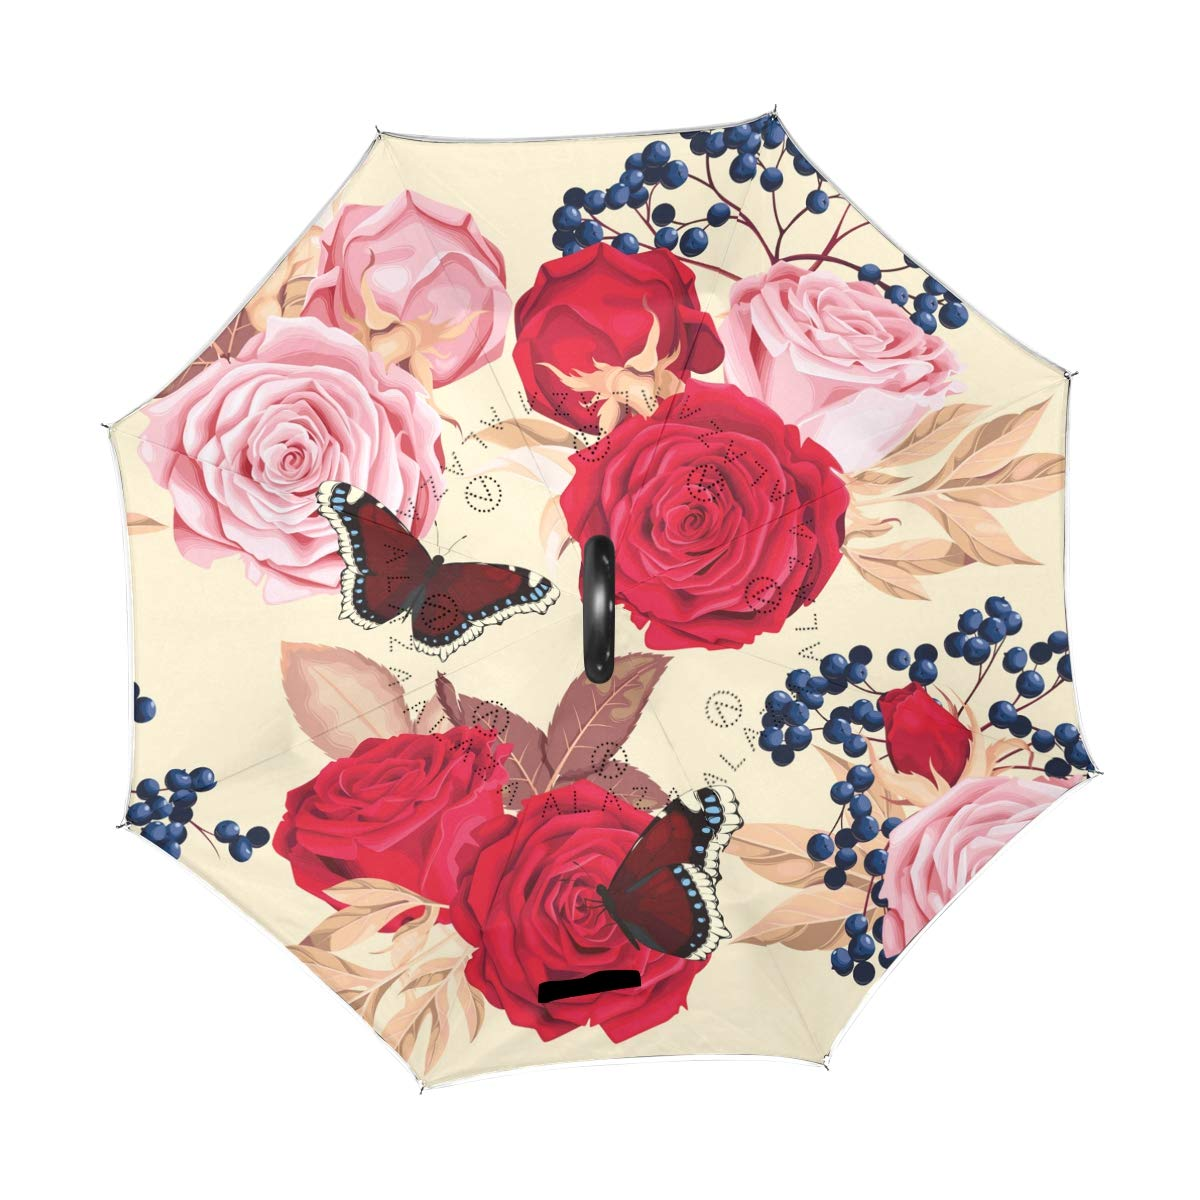 258a3517f29c Amazon.com : ATZUCL Rose and Butterflies Reverse Umbrella with C ...